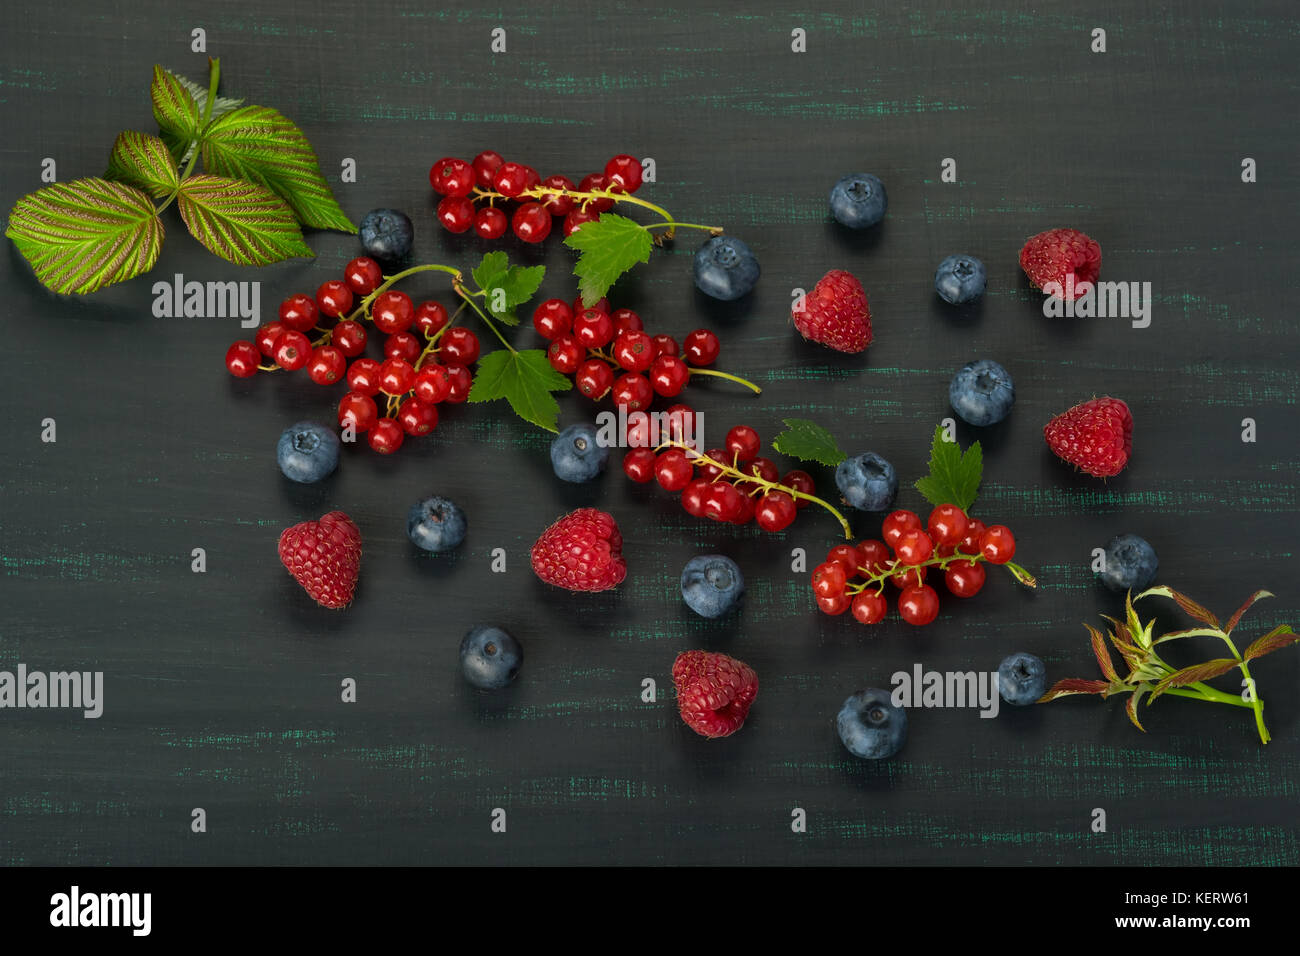 Summer berries with leaves on a dark background close-up - Stock Image